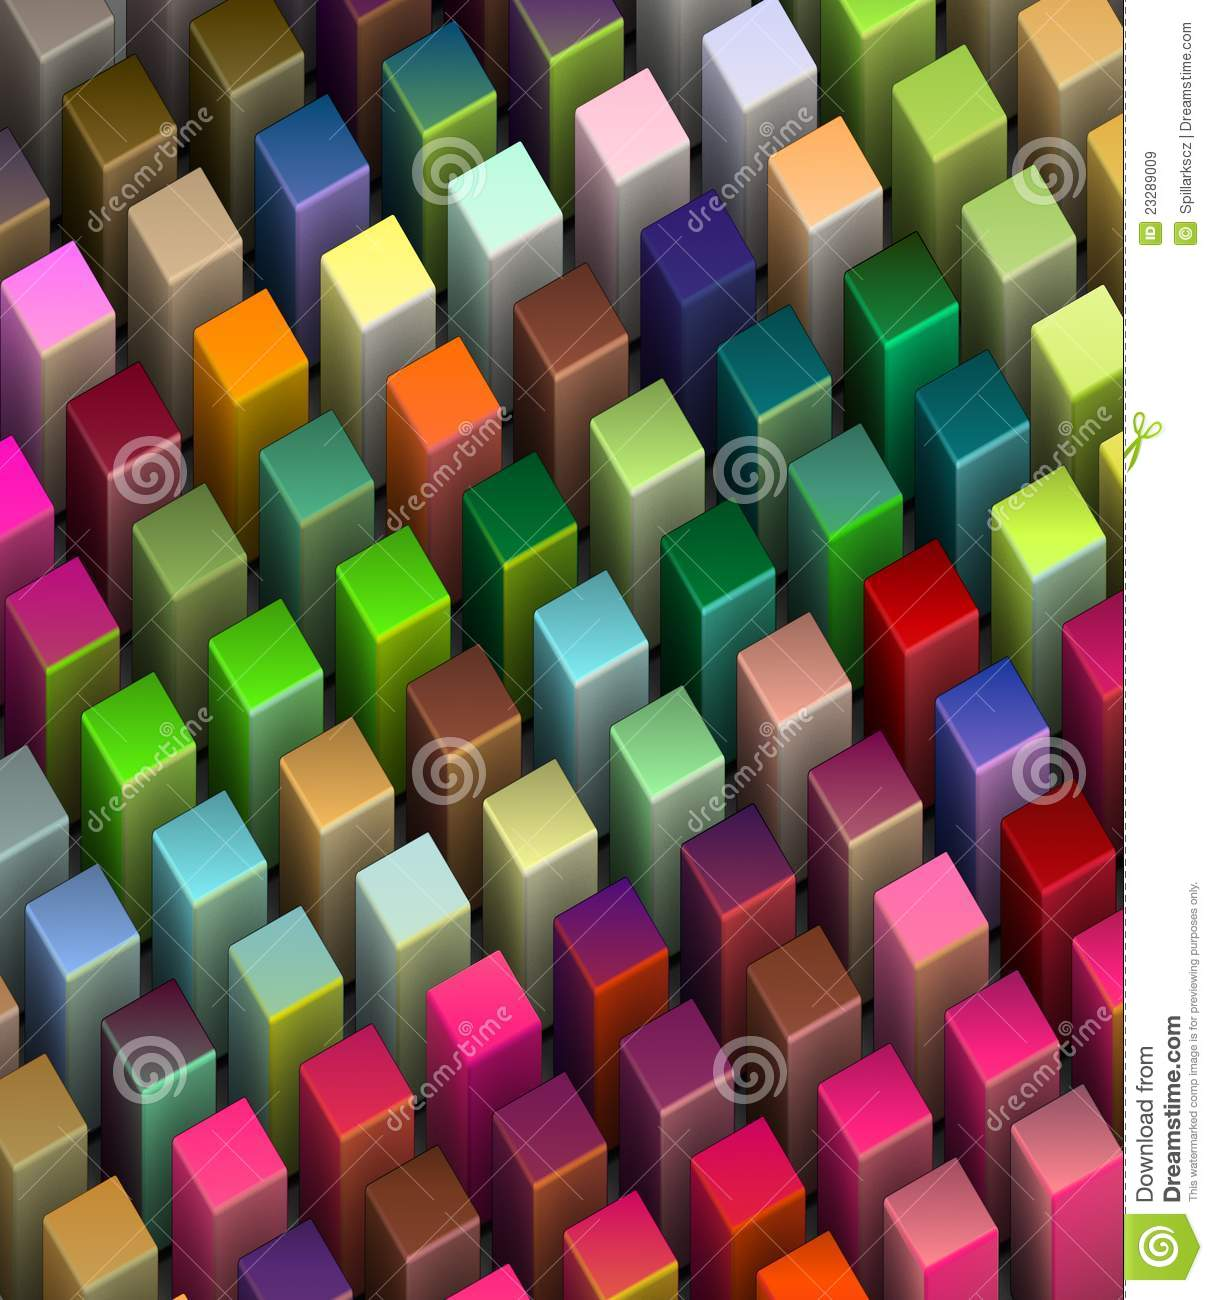 Frog View 3d Beveled Cubes In Bright Colors Stock